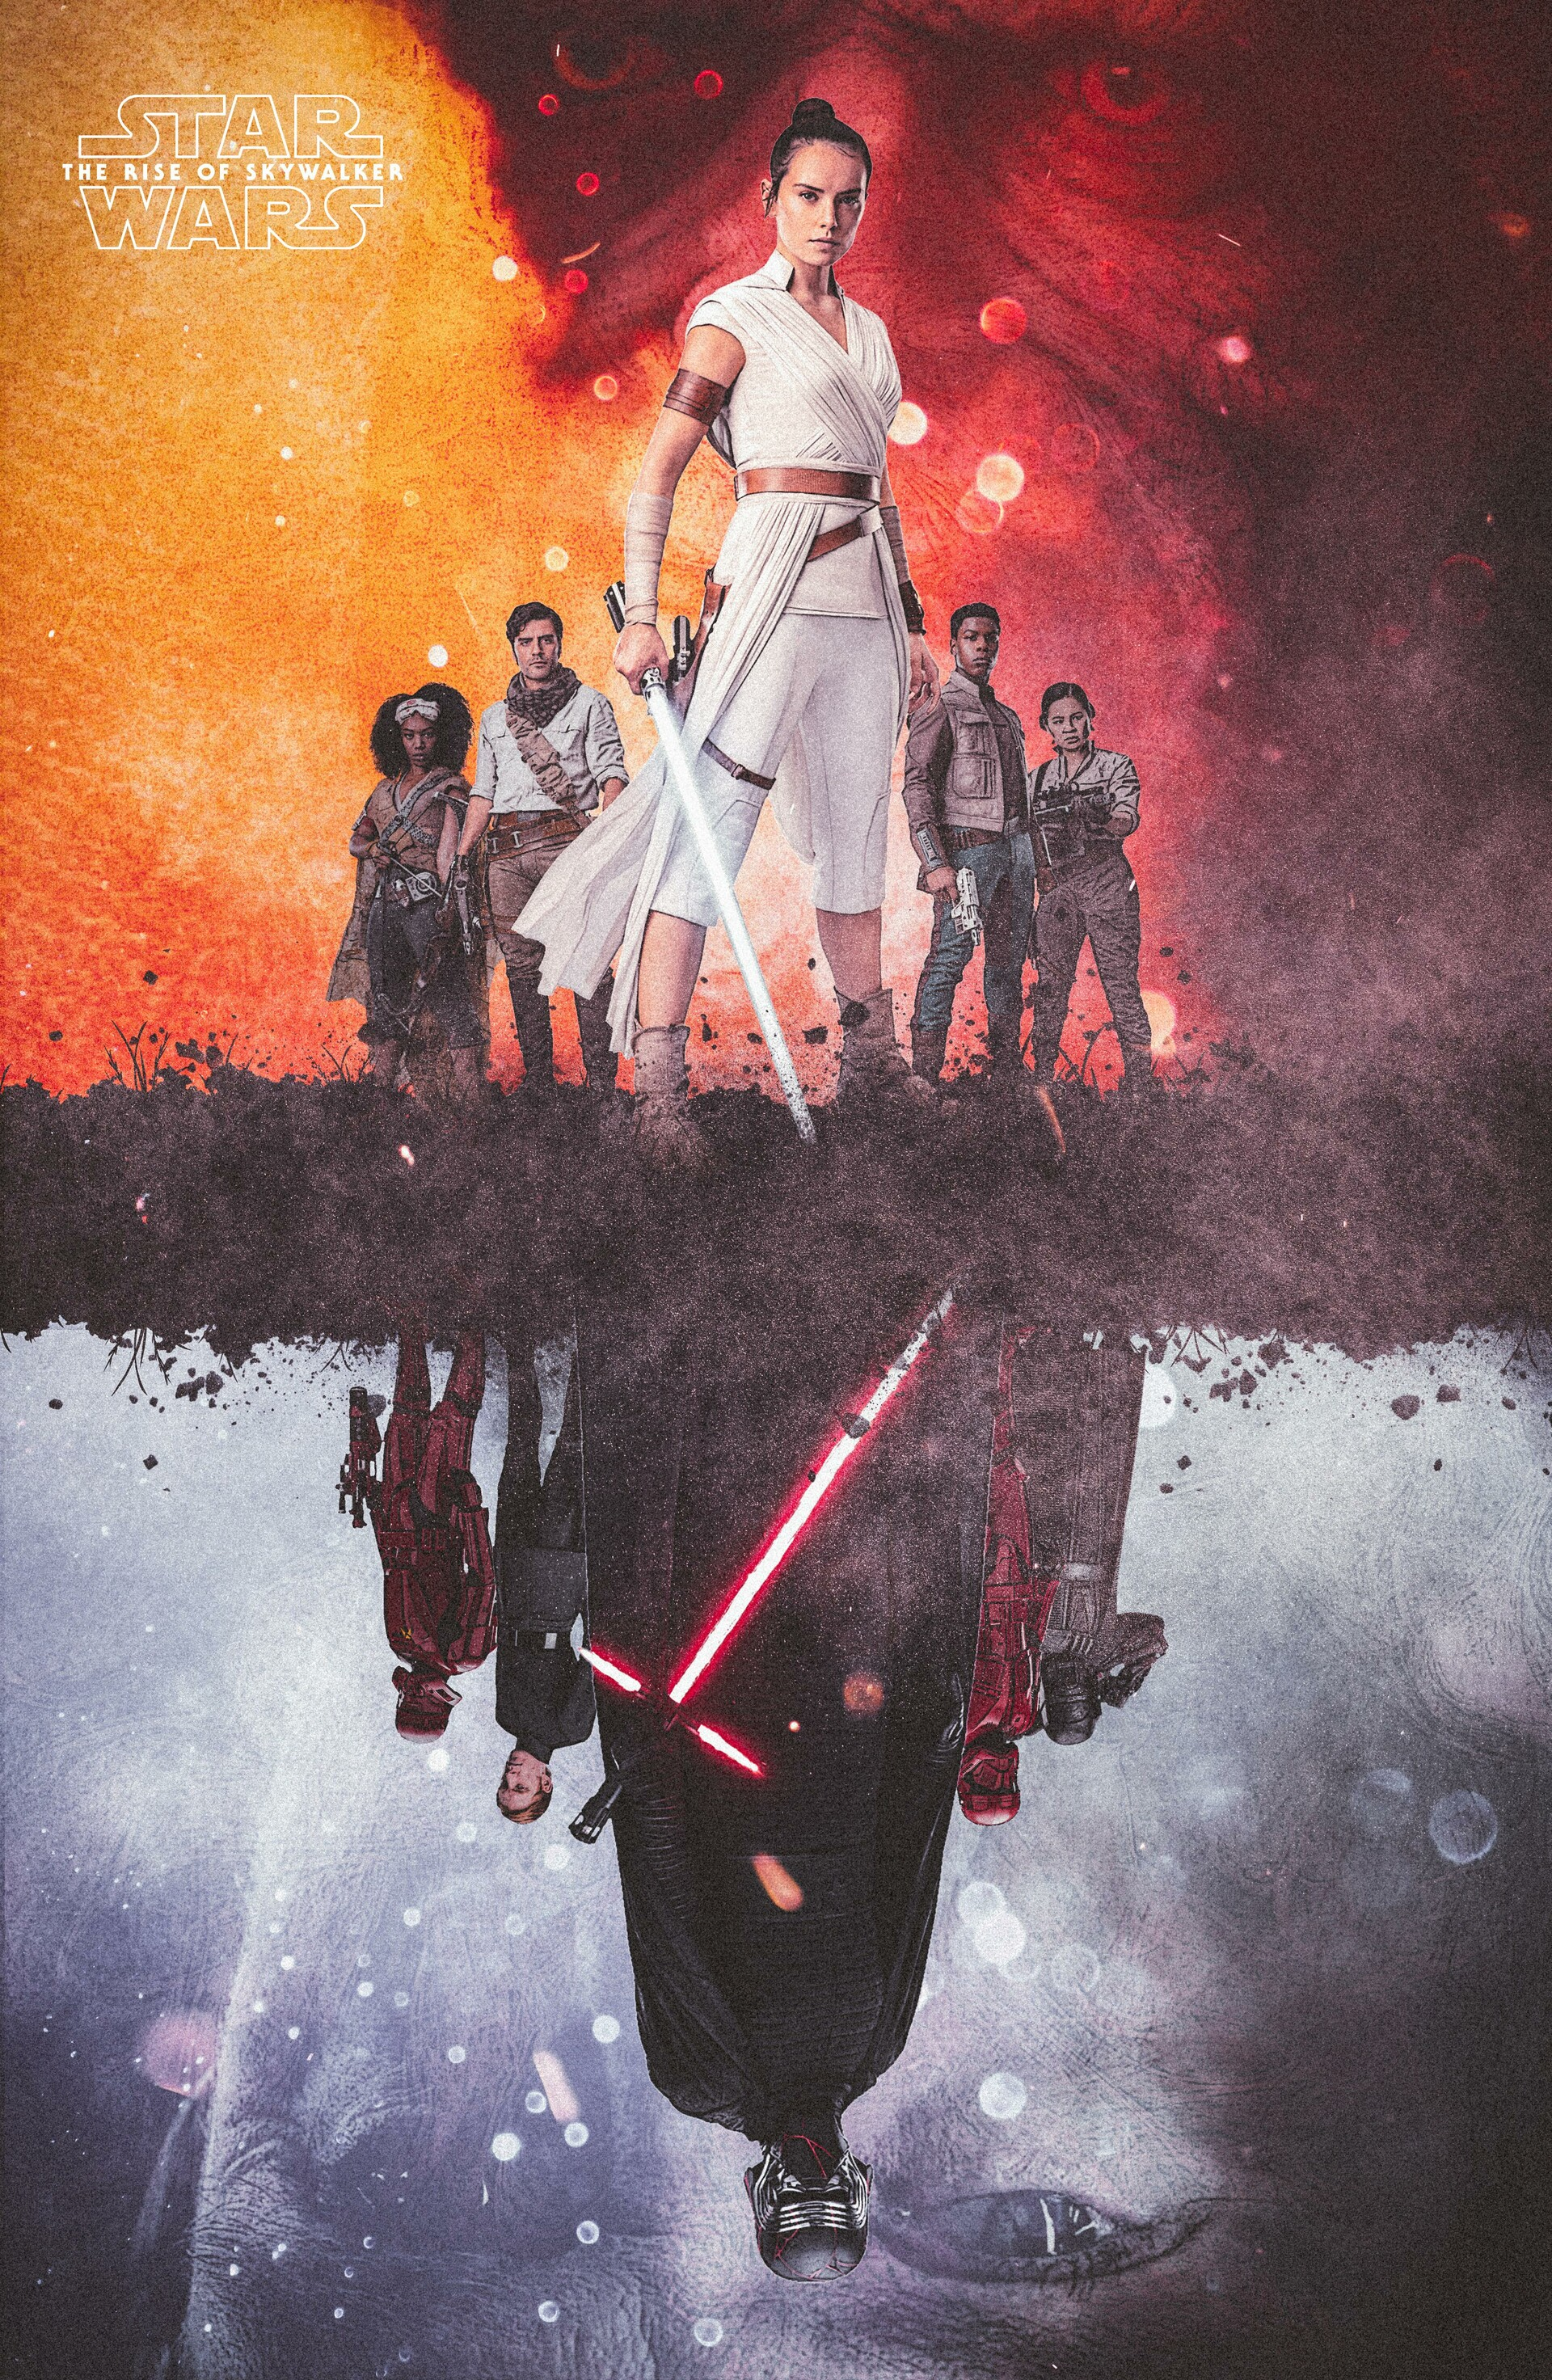 Artstation Star Wars The Rise Of Skywalker Alternate Movie Poster Neemz The Movie Poster Guy Nima Neemz Nakhshab